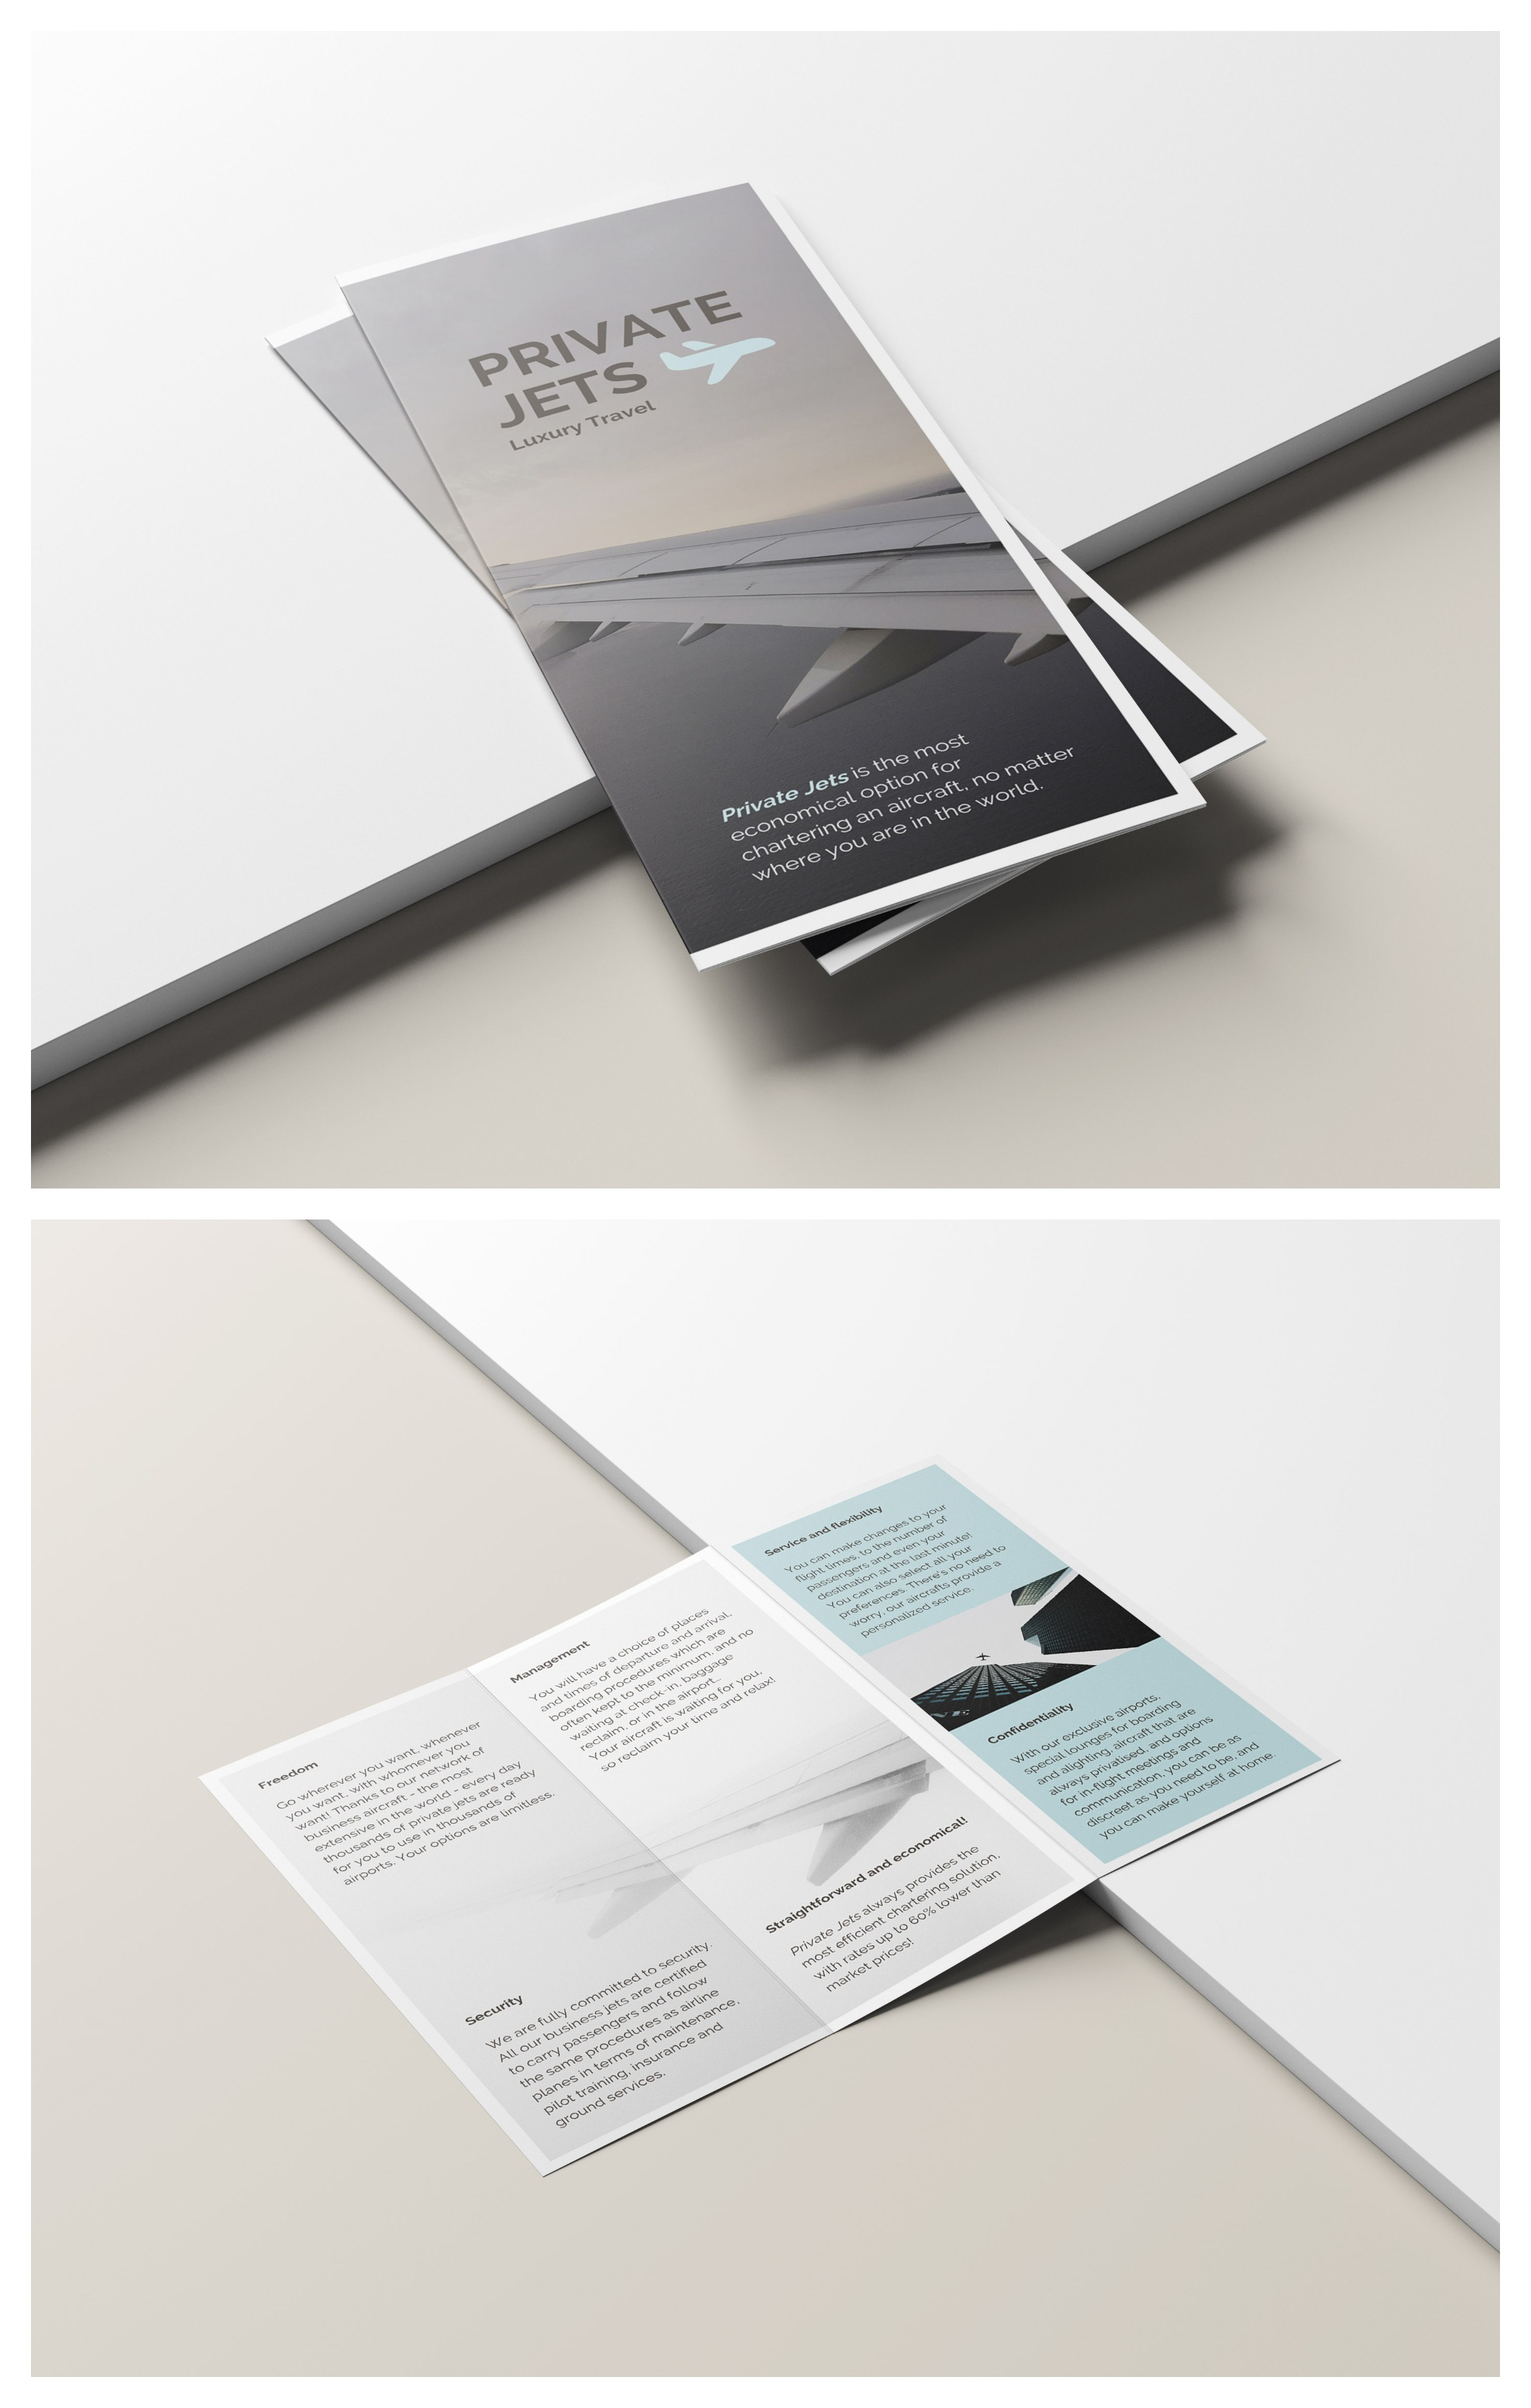 75  brochure ideas to inspire your next design project